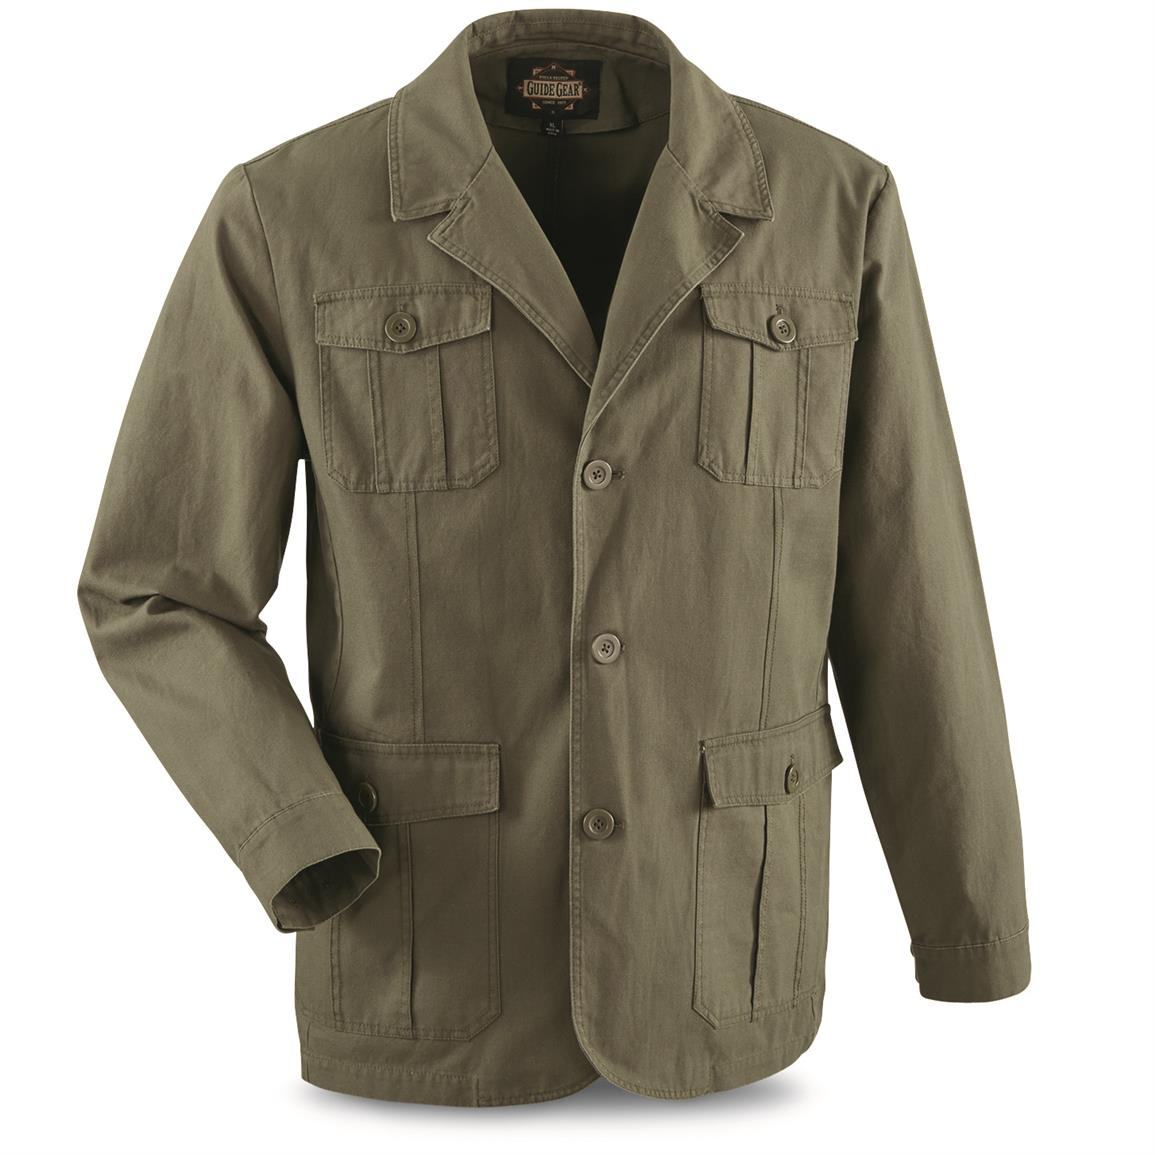 Guide Gear Men's Sportsman's Field Jacket, Olive